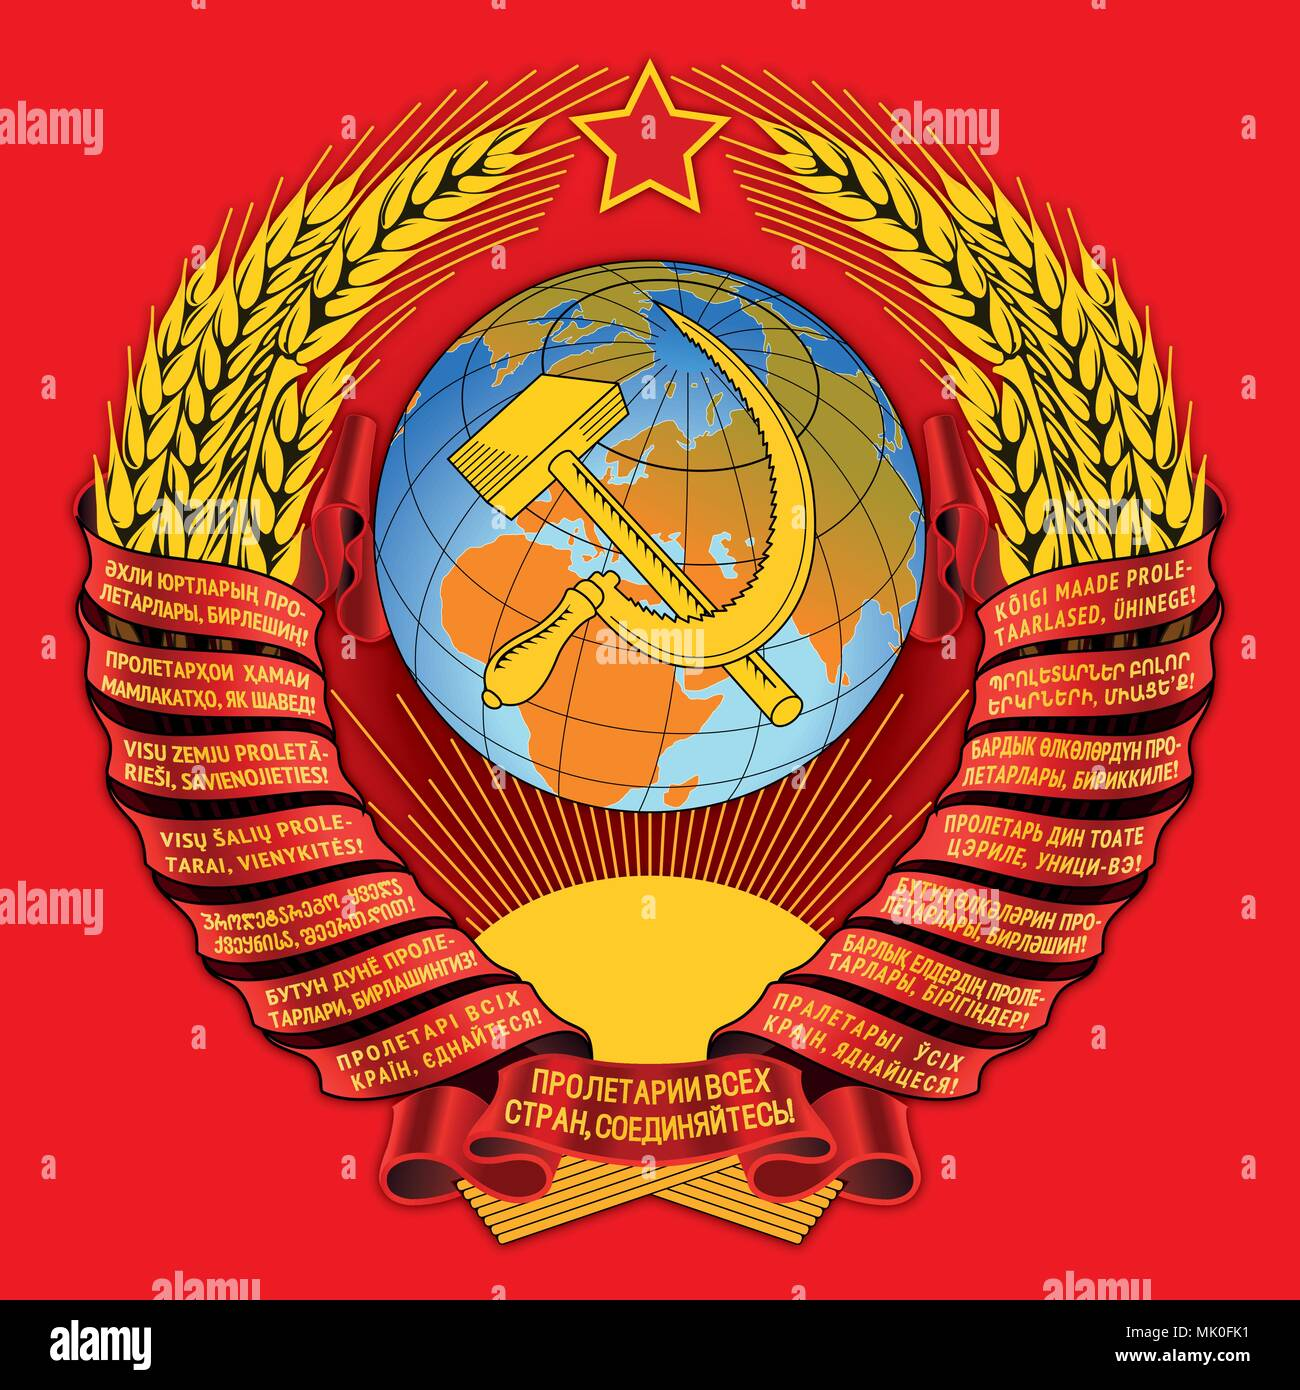 Soviet Union coat of arms, Russia, historical crest - Stock Image